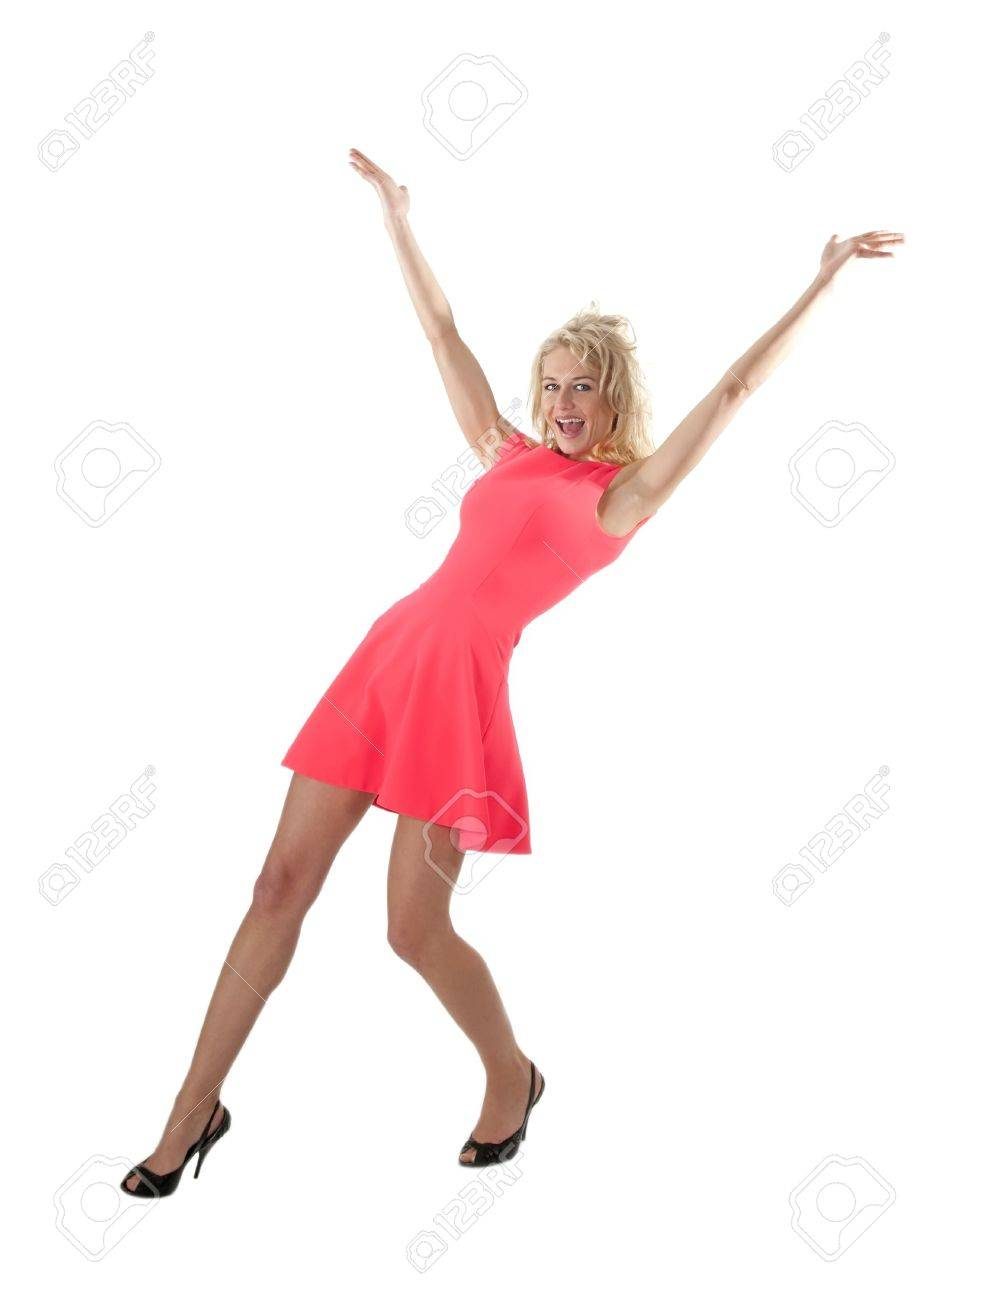 happy young woman in red dress cheering with raised arms Stock Photo - 20047446